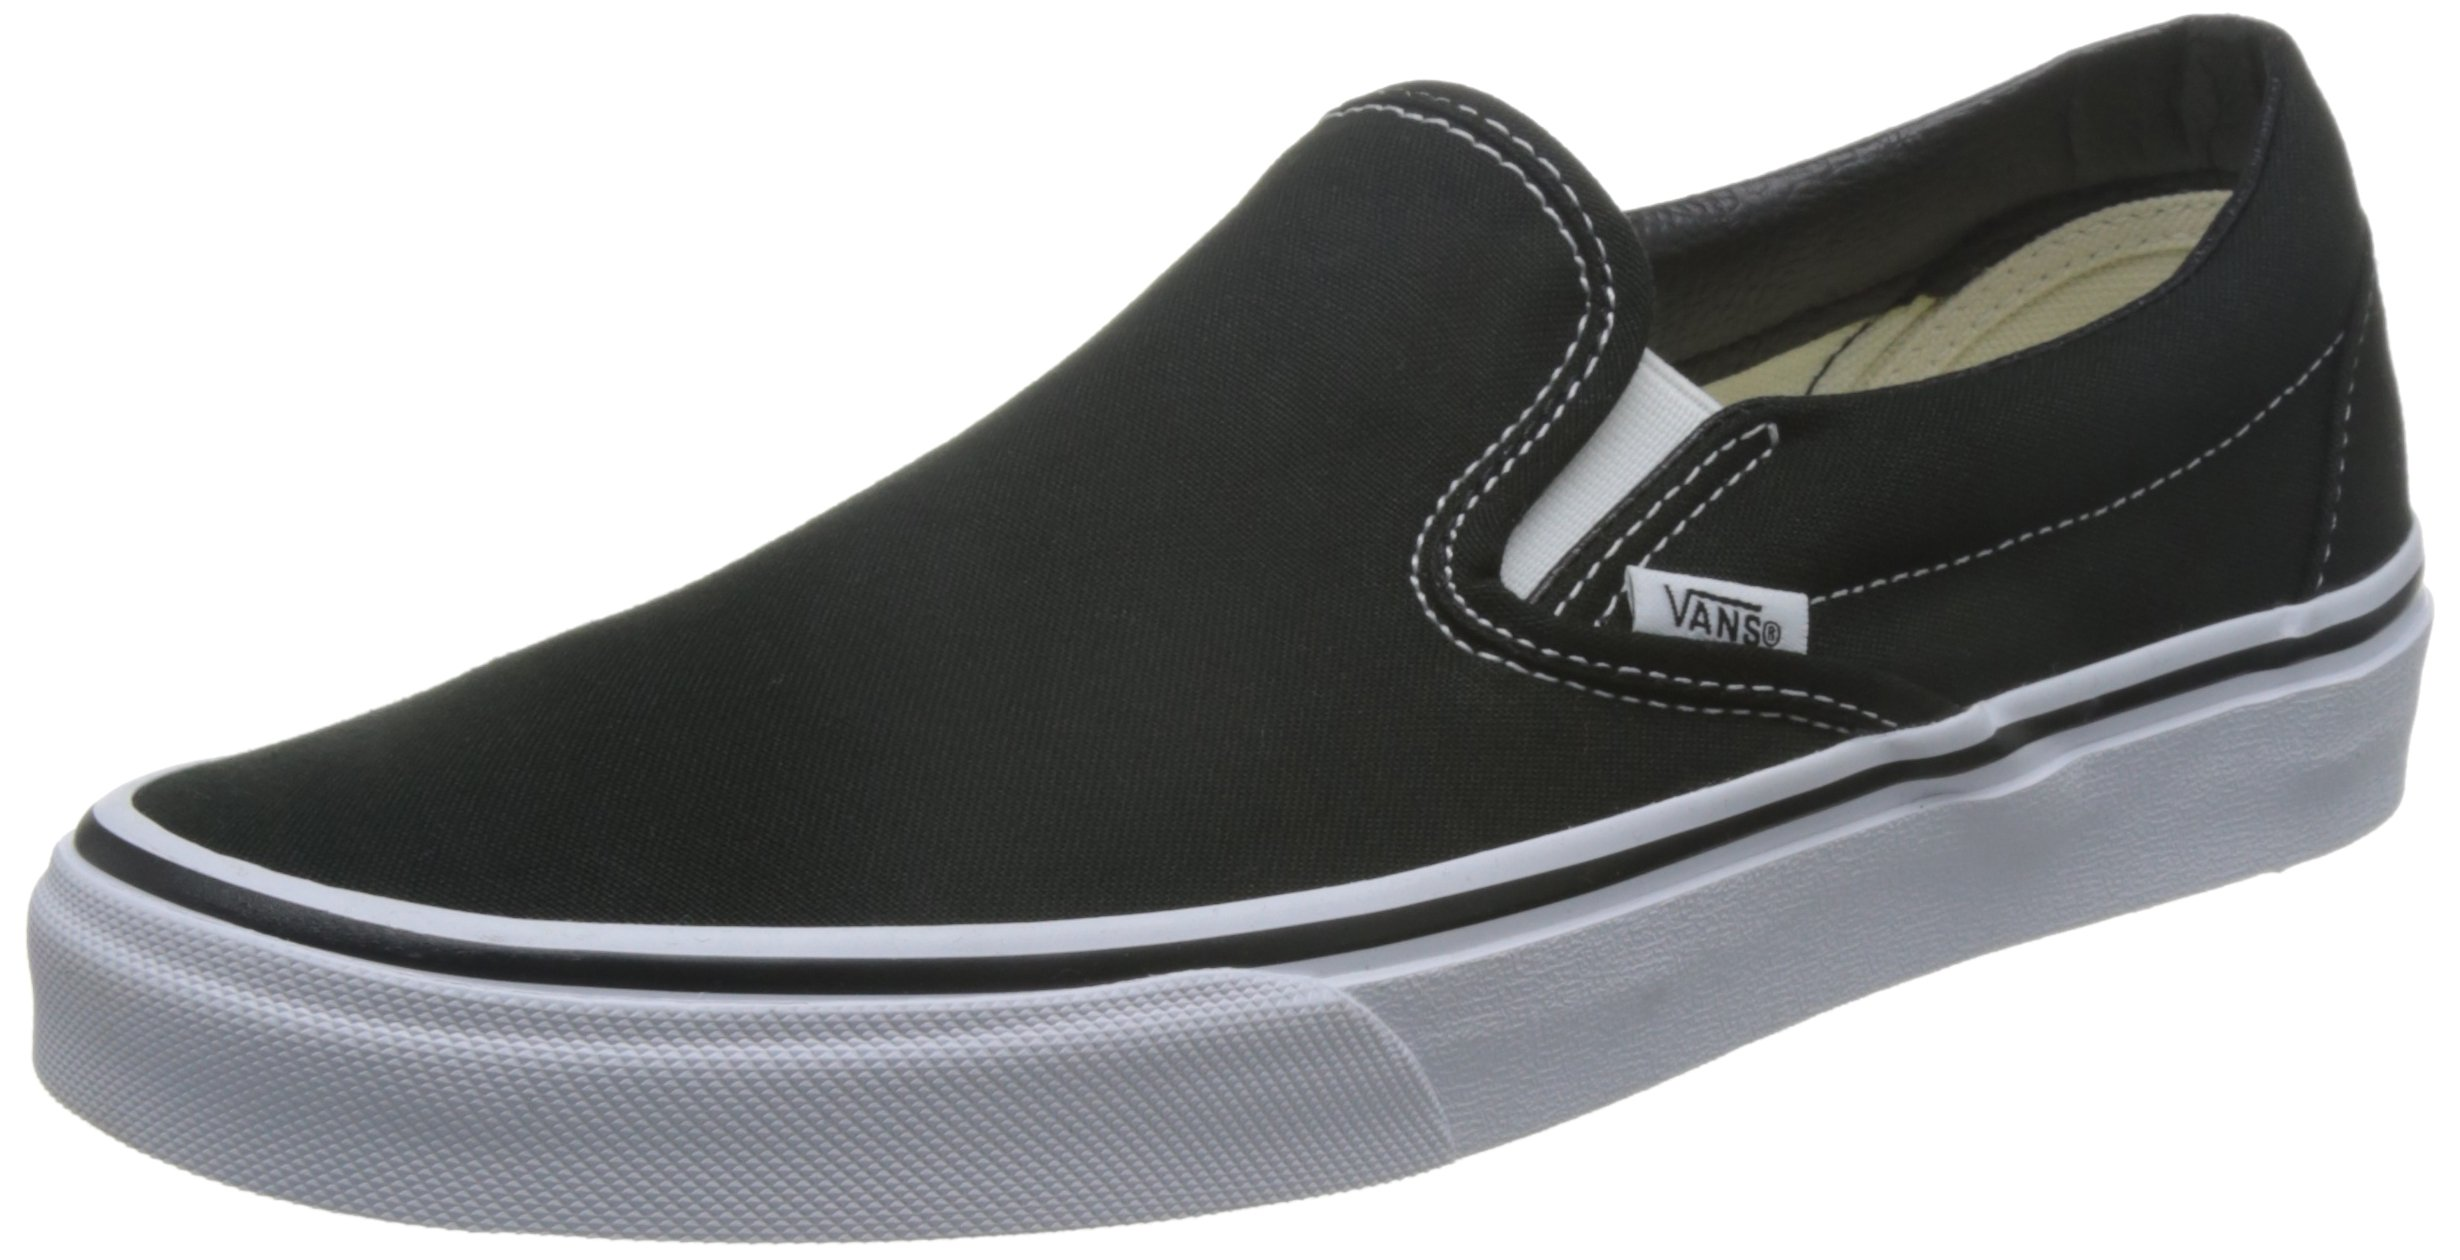 vans classic slip on skate shoes black white 7 uk new ebay. Black Bedroom Furniture Sets. Home Design Ideas